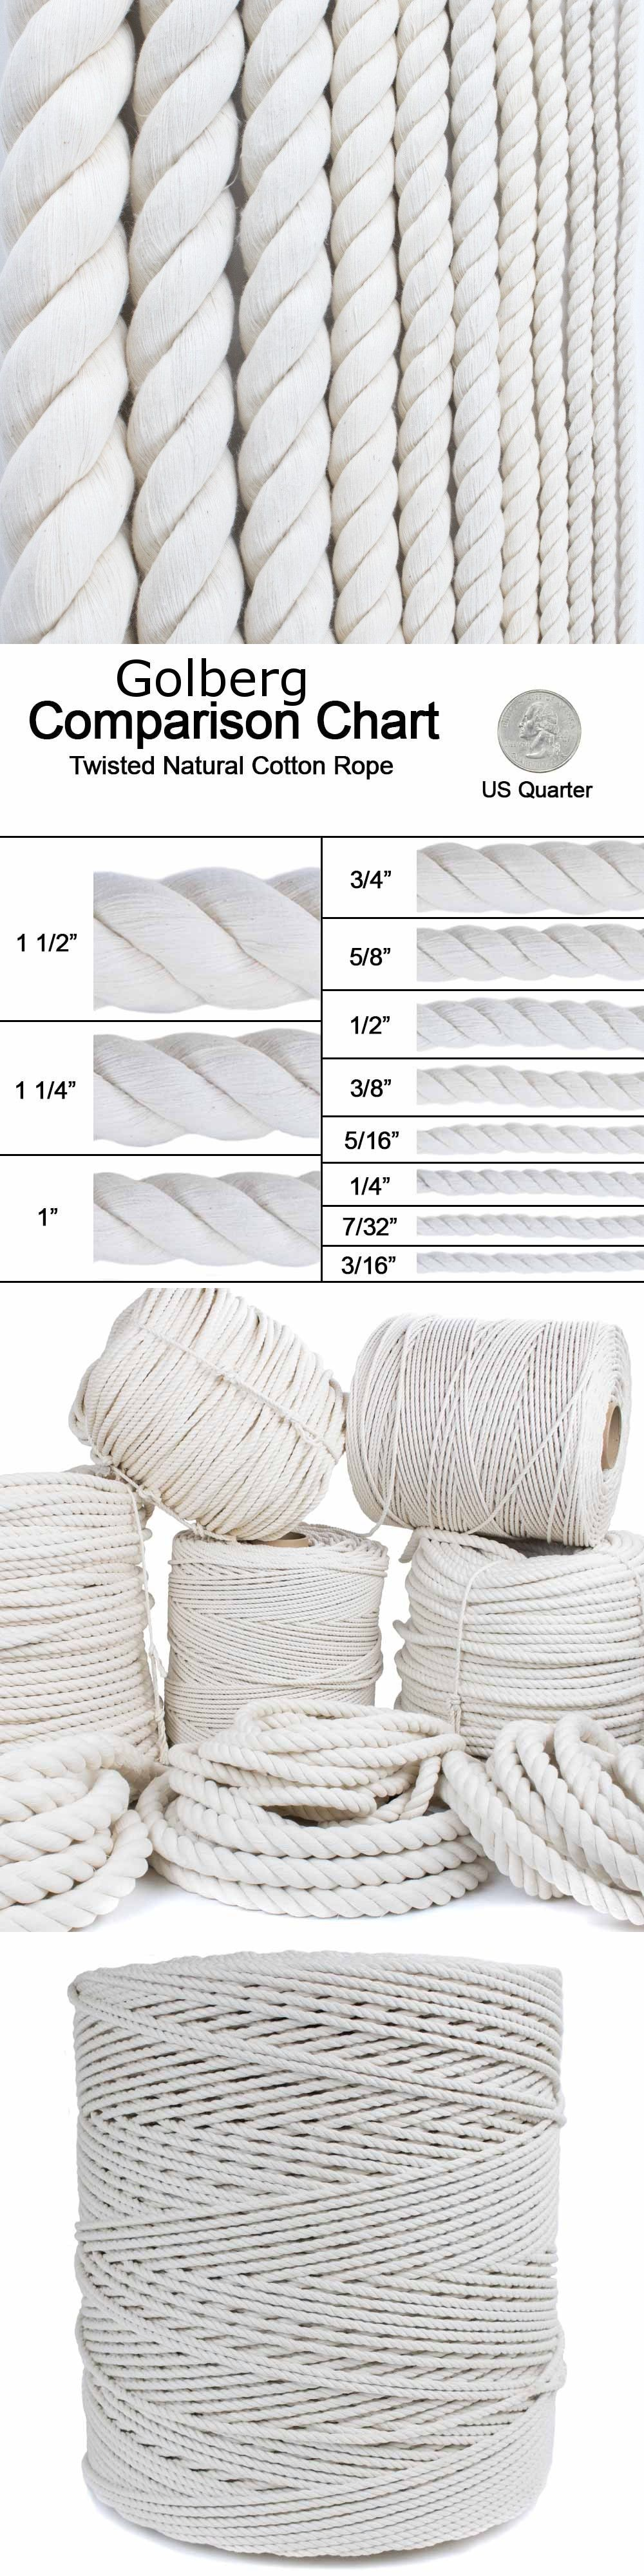 1//4 Several Lengths to Choose 3//16 7//32 1//4 5//16 3//8 1//2 5//8 3//4 1 1 1//4 GOLBERG G 1 1//2 5//16 GOLBERG Twisted 100/% Natural Cotton Rope 5//32 5//8 1 1//4 White Cotton Rope 3//4 3//16 3//8 1//2 1 7//32